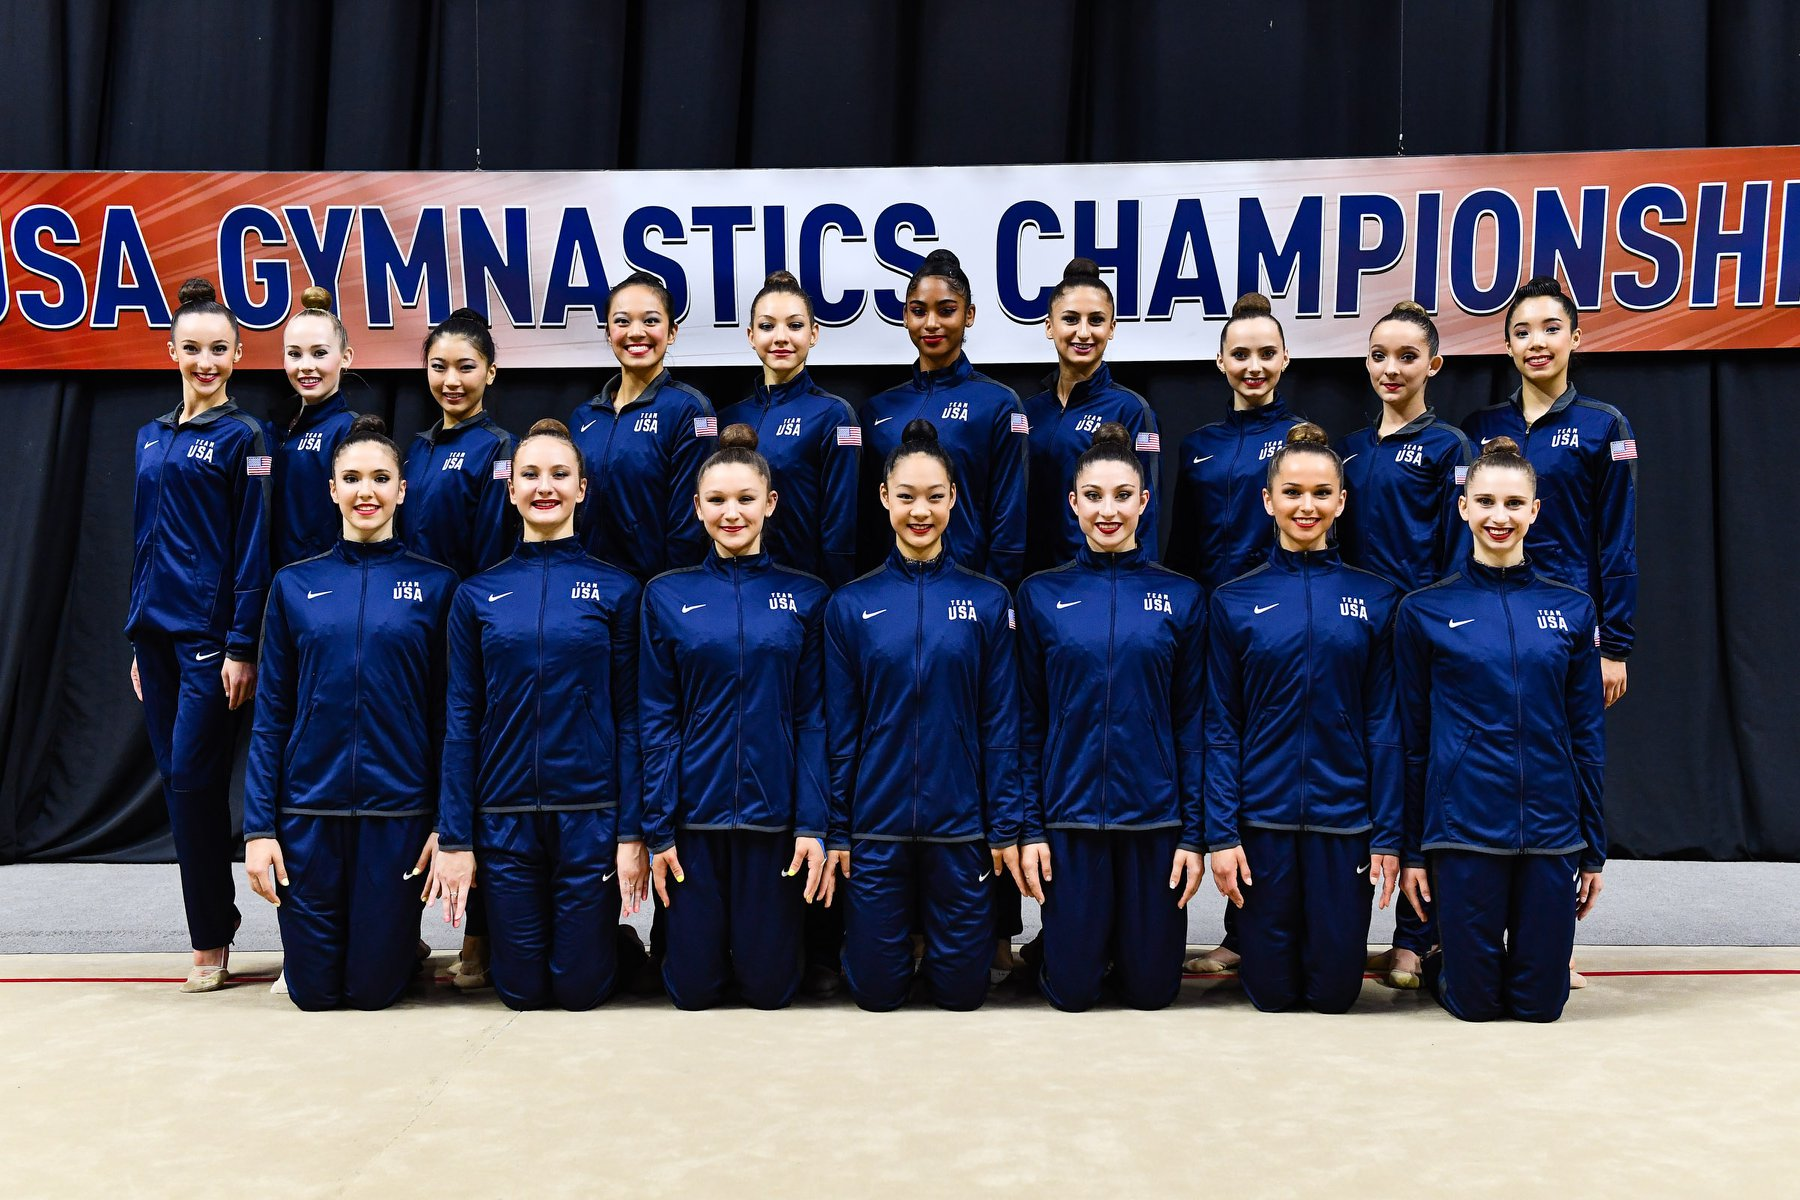 The new 2019-2020 Senior National Team at the USA Gymnastics Championships. Elena Shinohara is third from the left on back row (Credit: USA Gymnastics)